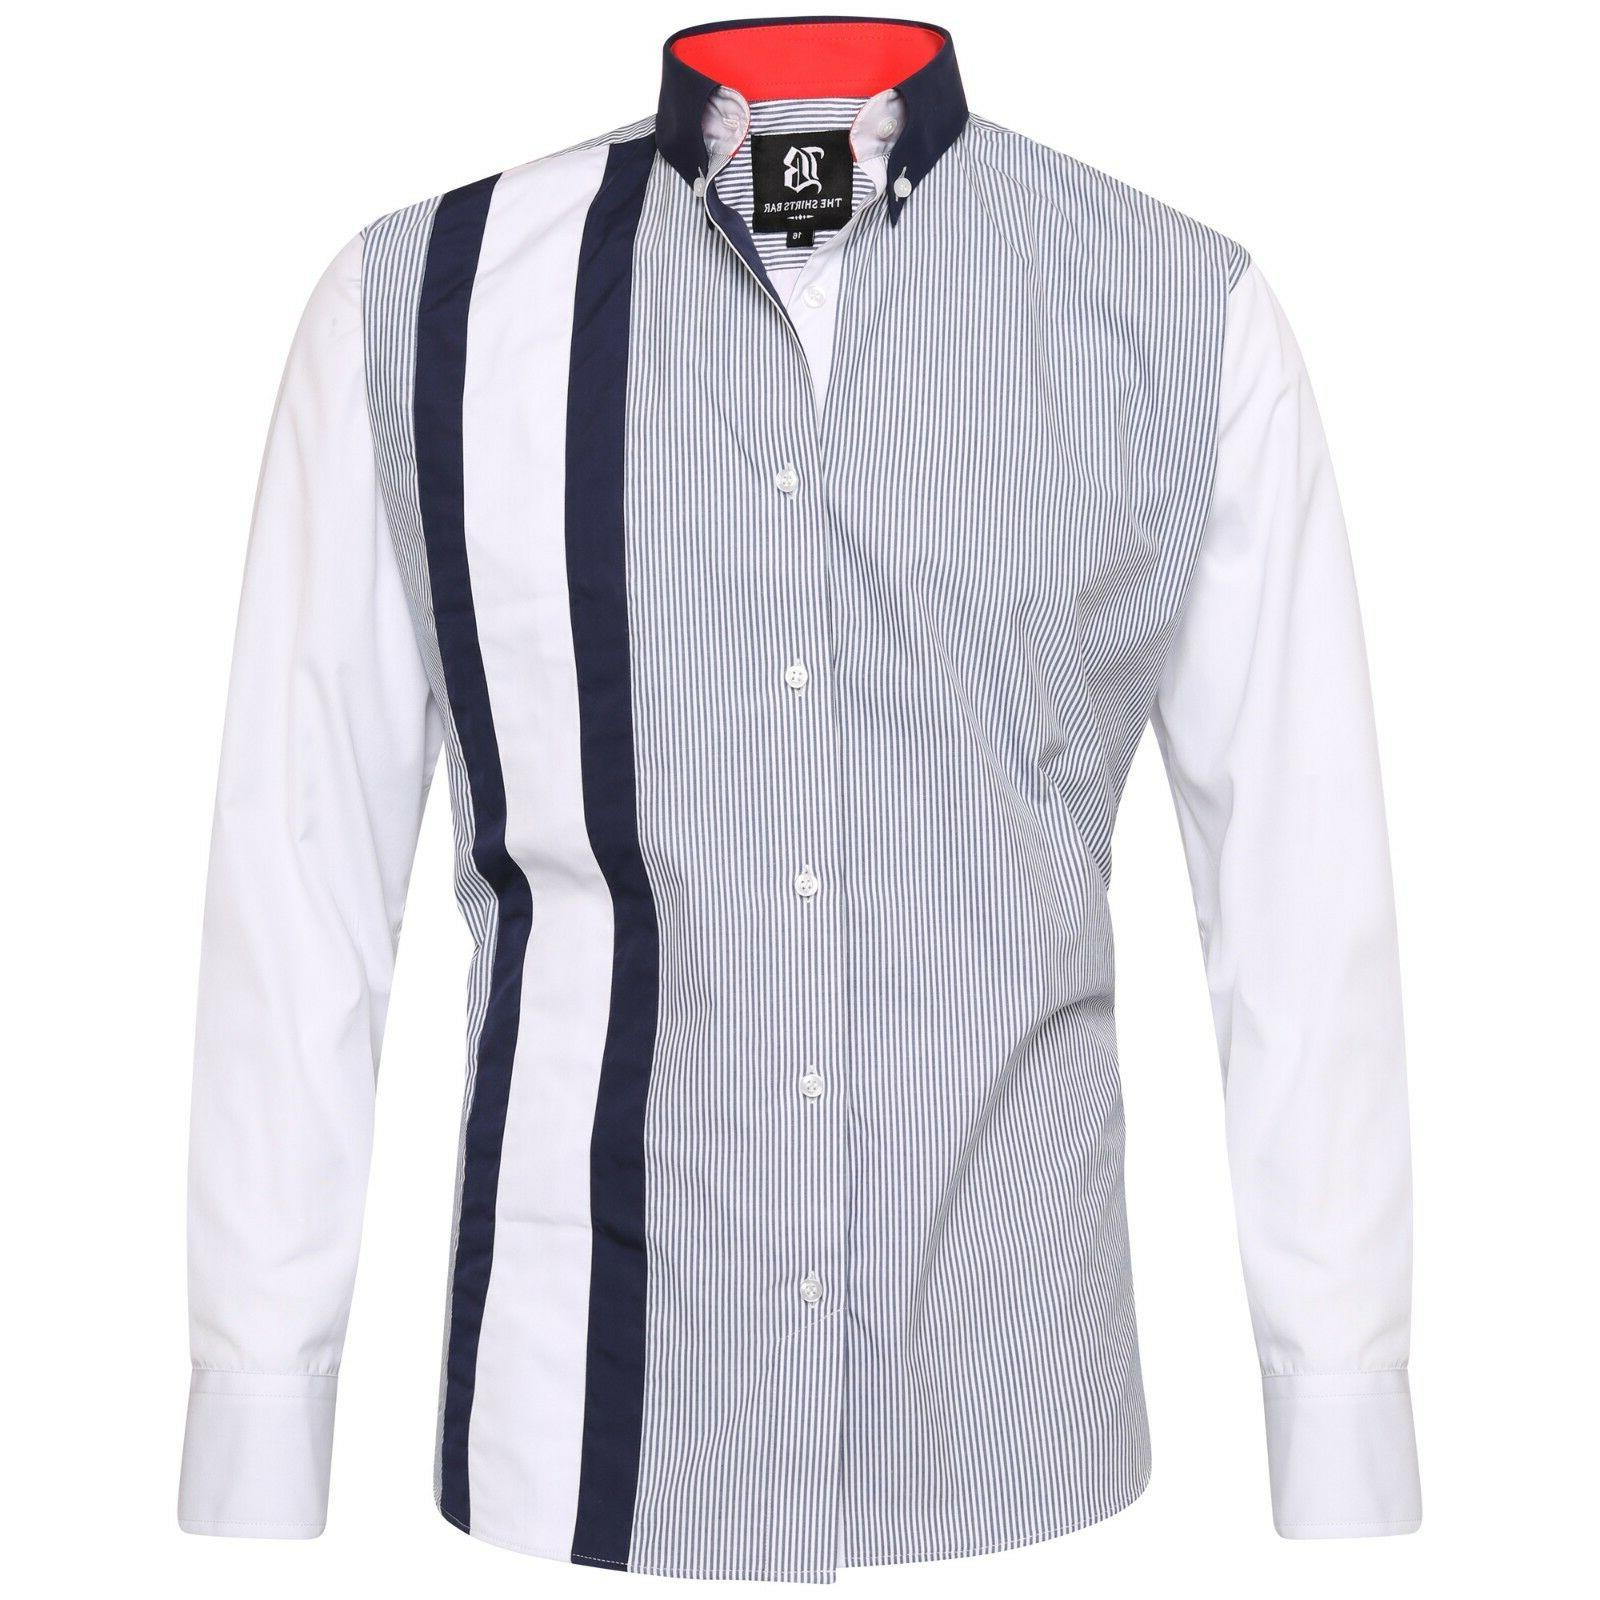 Men's Stripe Italian Luxury Shirts Casual